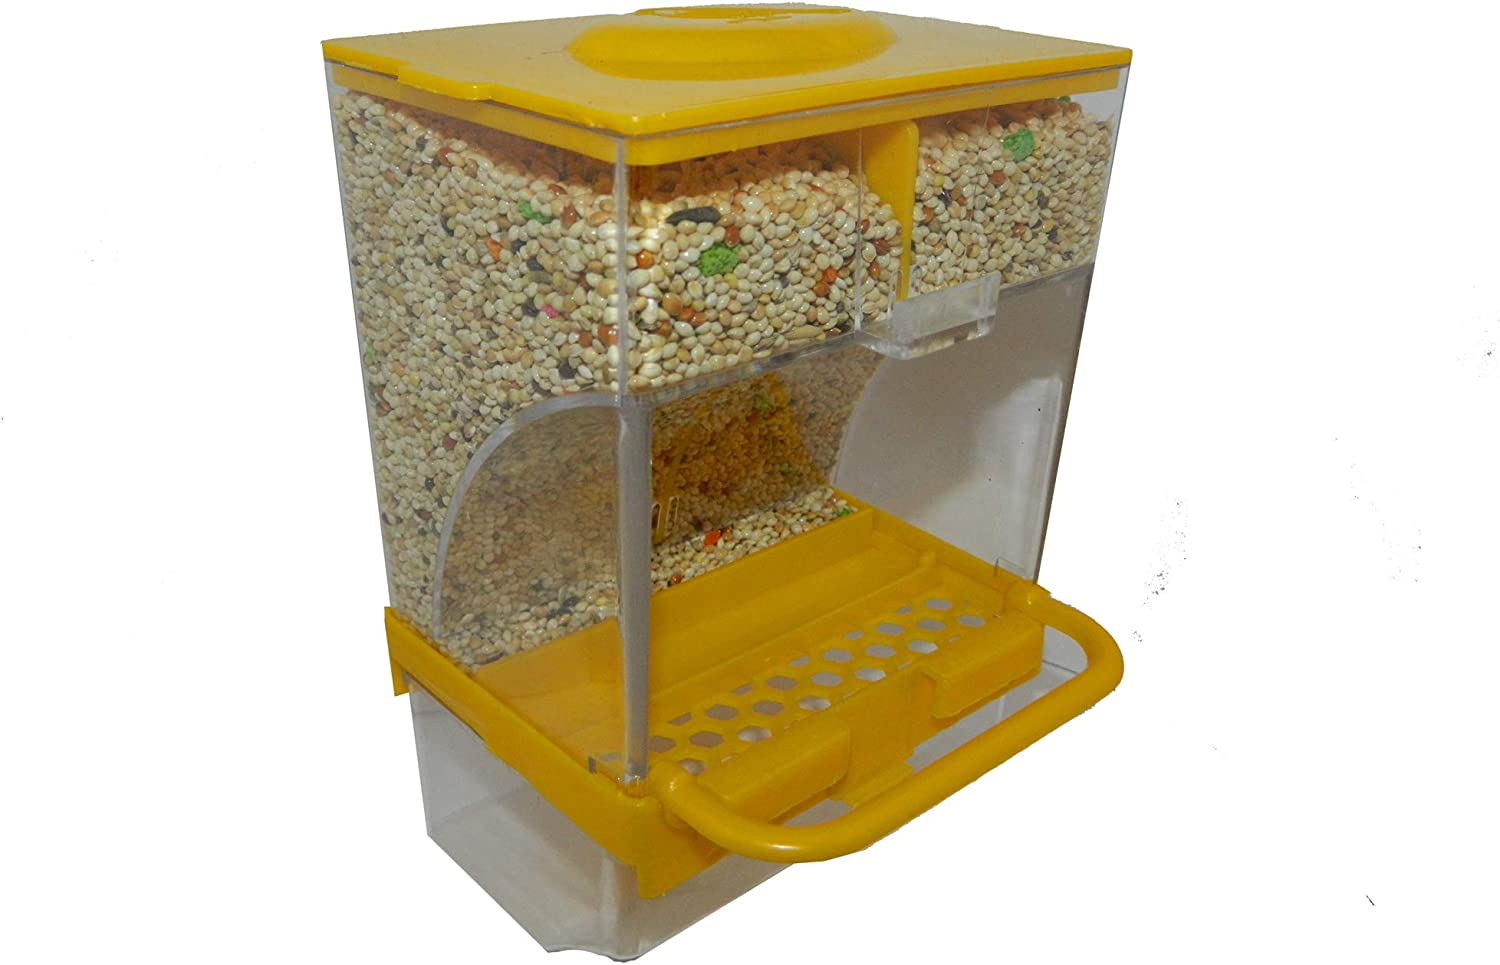 Petgroup No-Mess Bird Feeder Parrot Automatic Feeder Seed Pet Food Container Perch Cage Accessories for Budgerigar Canary Cockatiel Finch Parakeet